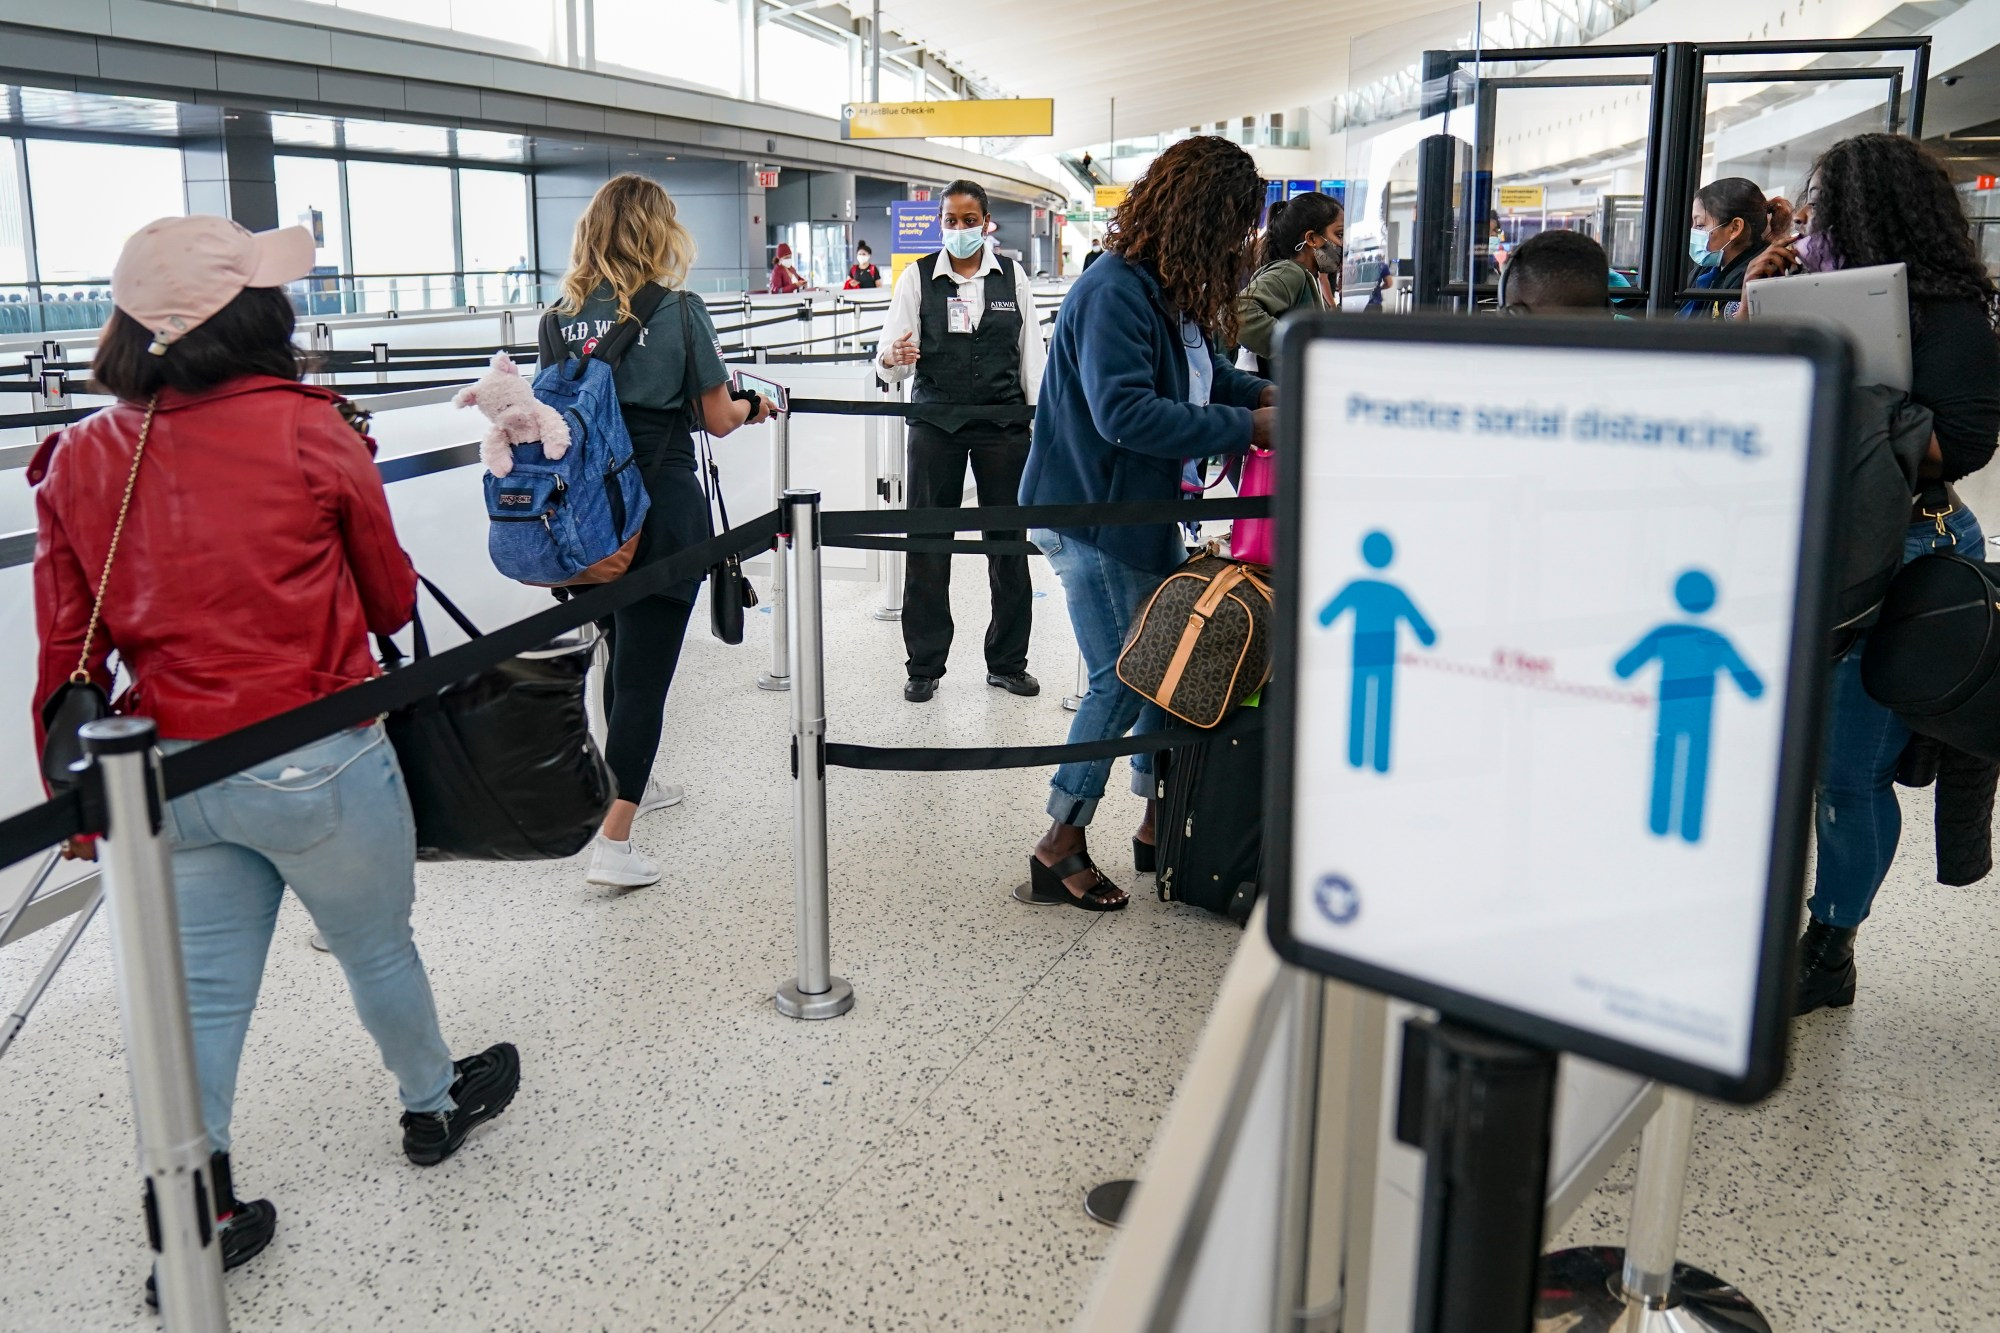 Transportation Security Administration personnel and travelers observe COVID-19 transmission prevention protocols at John F. Kennedy International Airport in New York on Oct. 20, 2020. (John Minchillo / Associated Press)